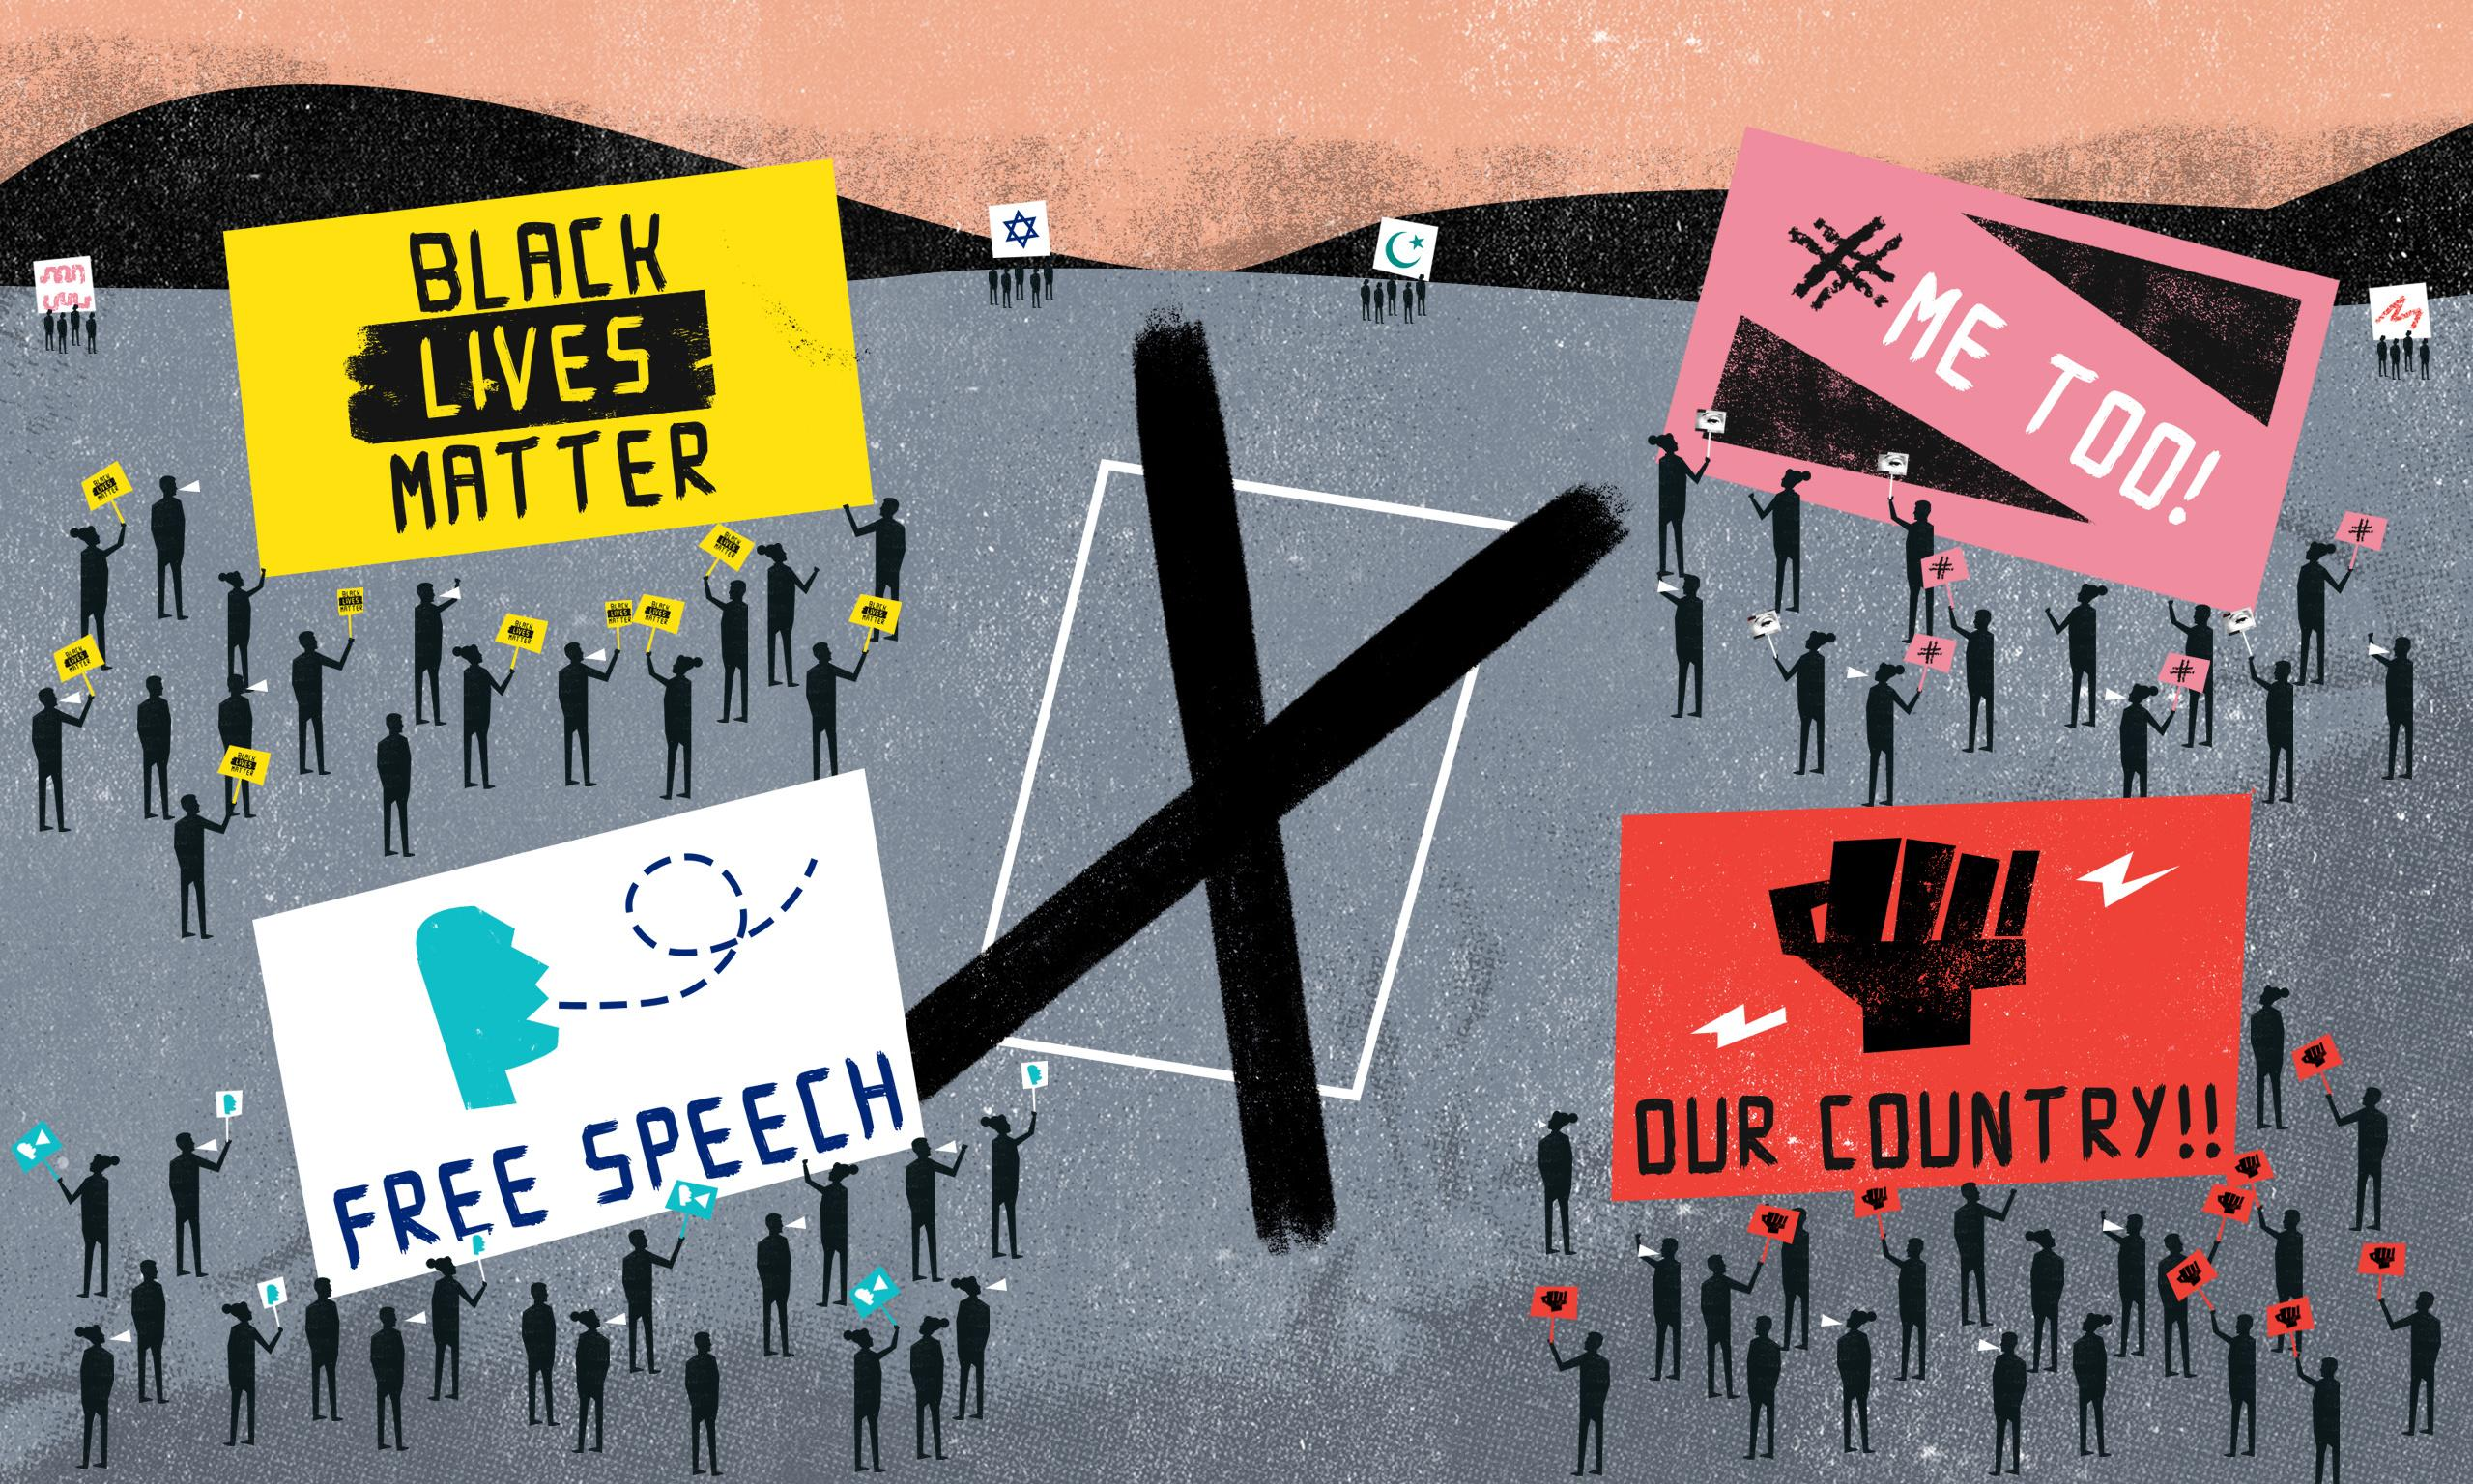 It comes as no shock that the powerful hate 'identity politics'